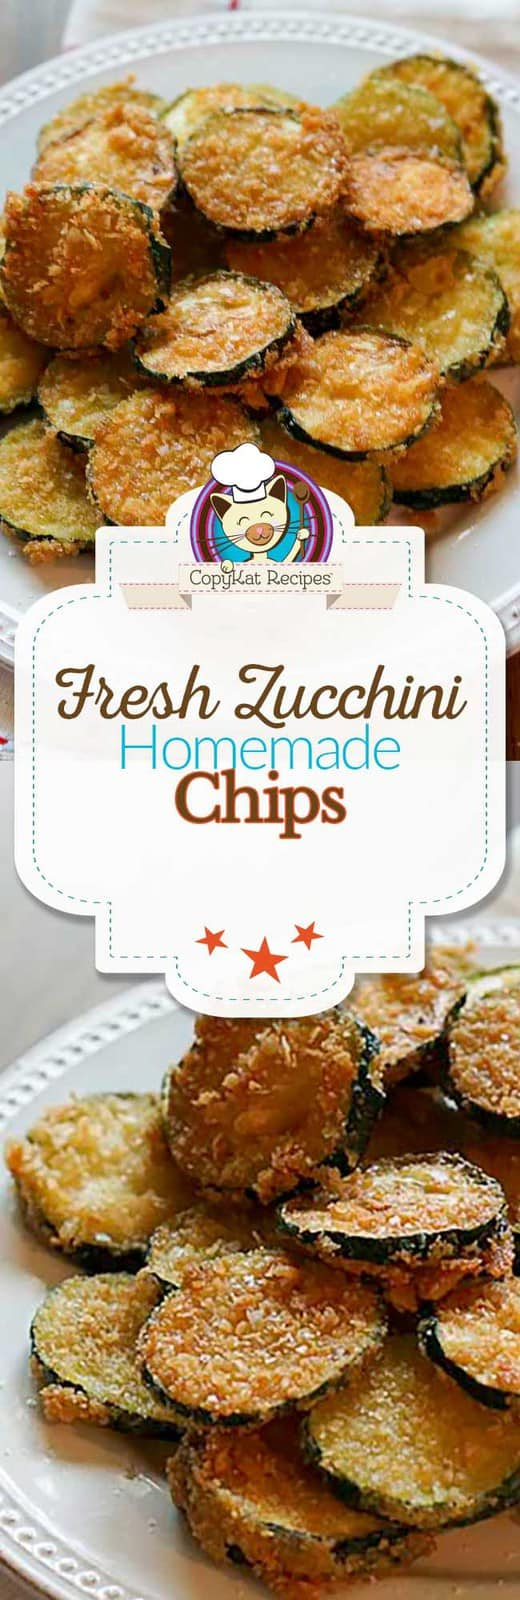 Make your own fresh zucchini fried chips.  This recipe has just 3 ingredients.